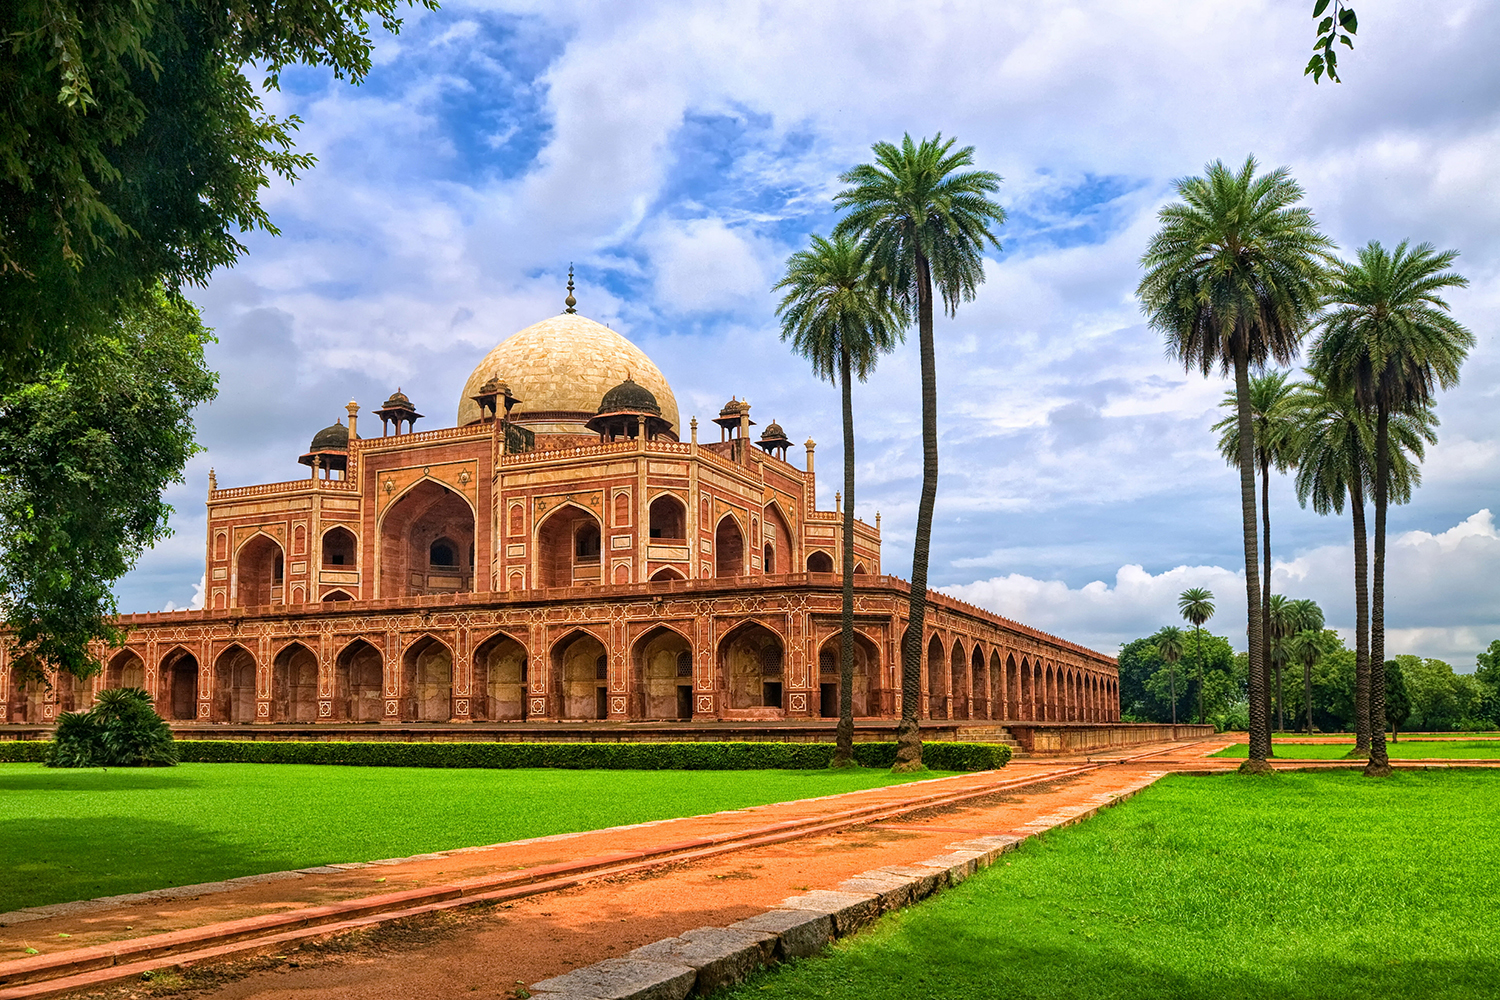 Buy Humayuns Tomb New Delhi Wallpaper Online in India at Best 1500x1000